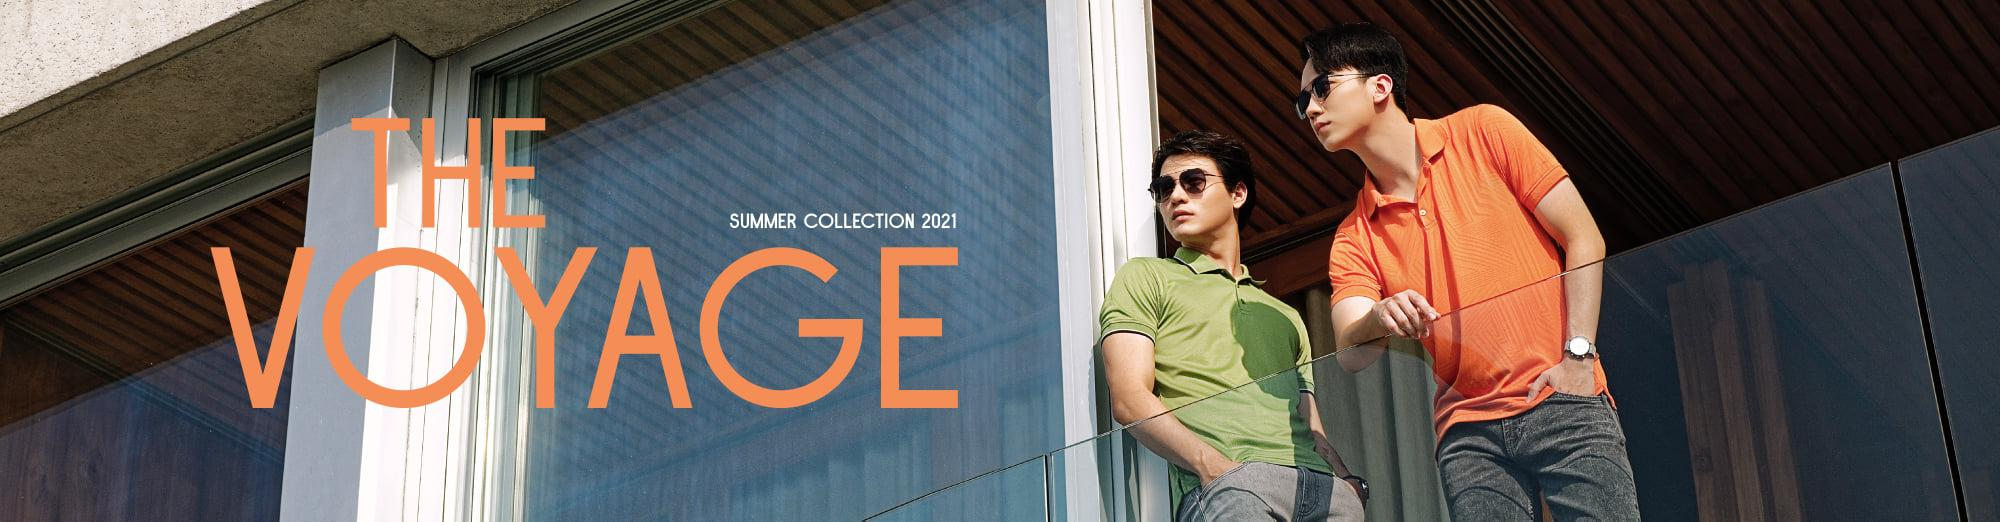 THE VOYAGE - SUMMER COLLECTION 2021